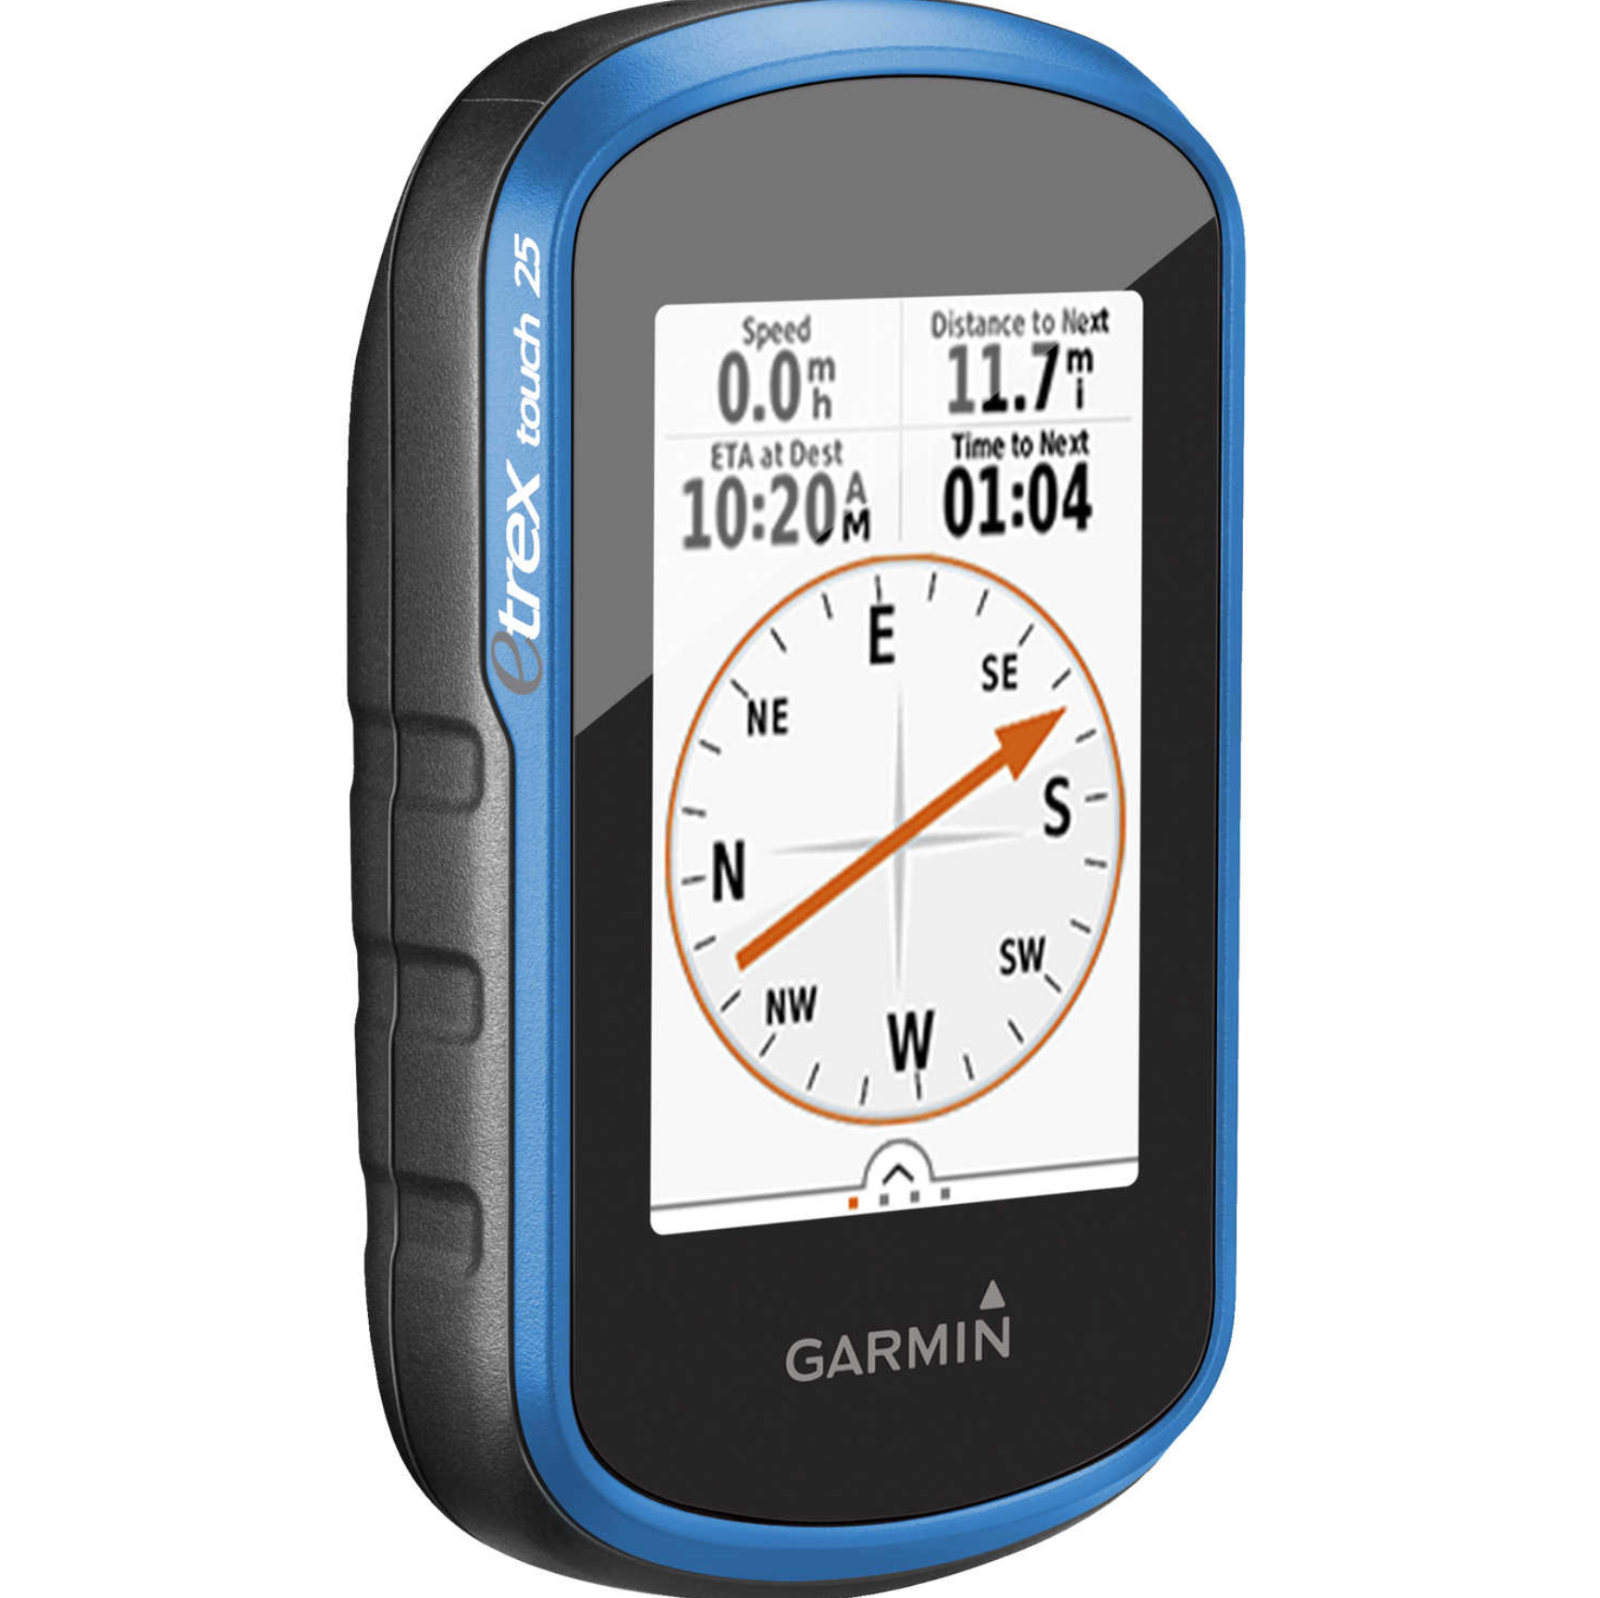 Garmin eTrex Touch 25 Handheld Outdoor Hiking GPS with Touchscreen 010-01325-00